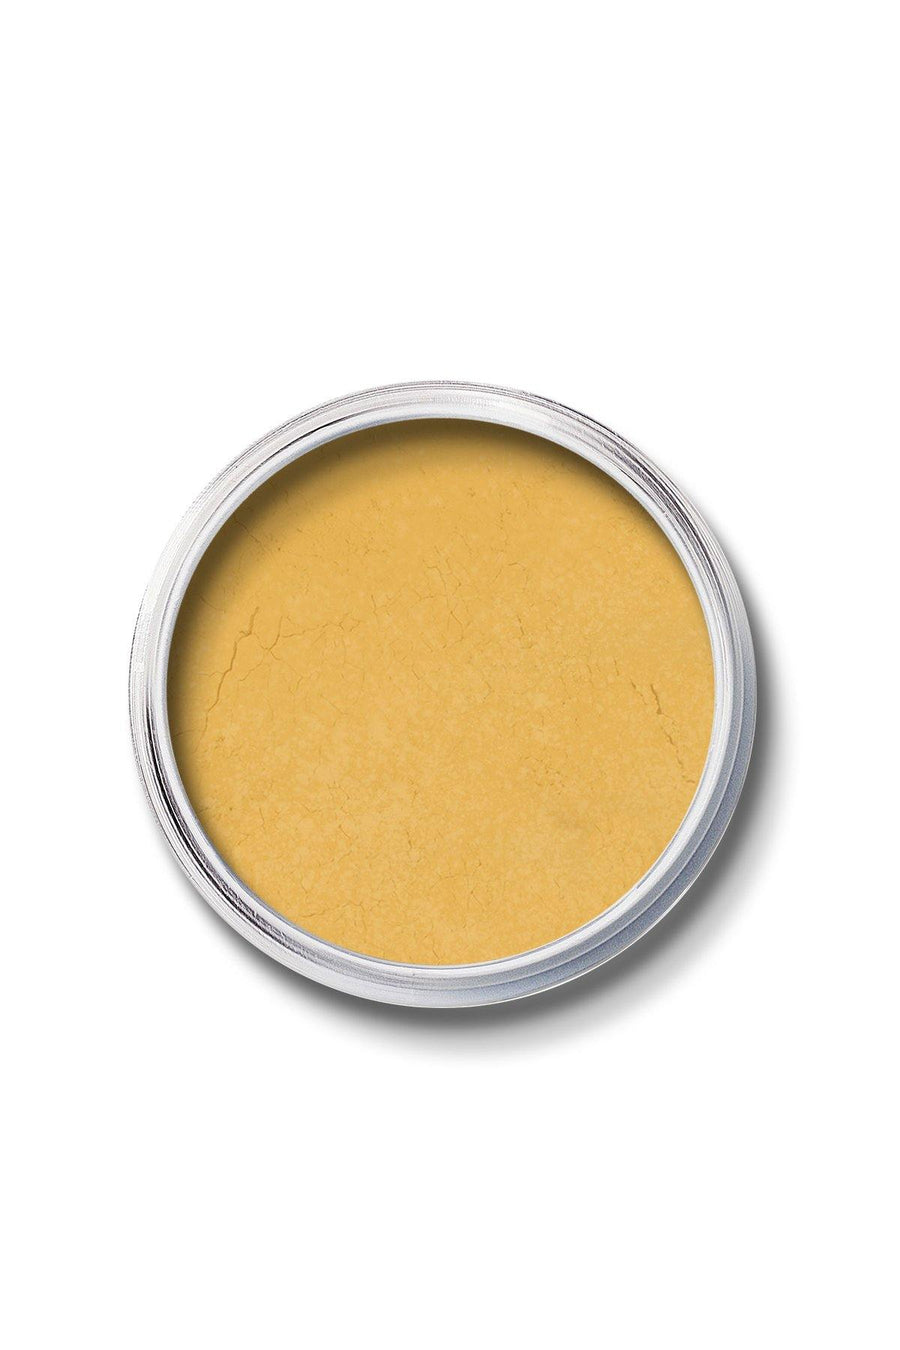 Mineral SPF 15 Foundation #10 - Golden Olive - Blend Mineral Cosmetics